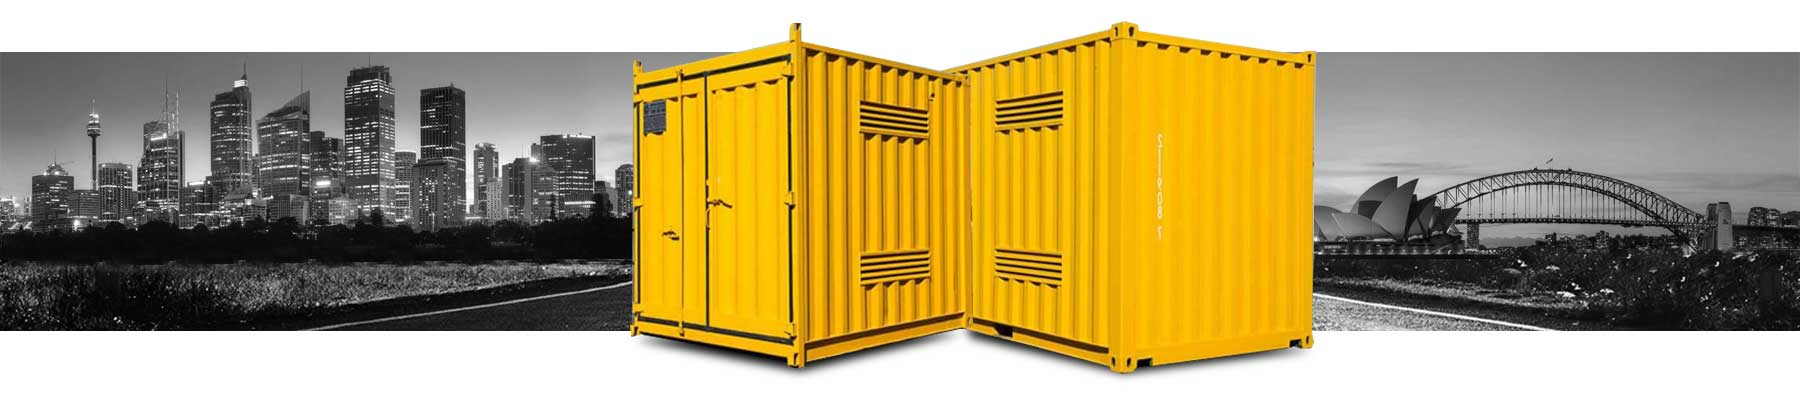 shipping-containers-sydney-dangerous-010